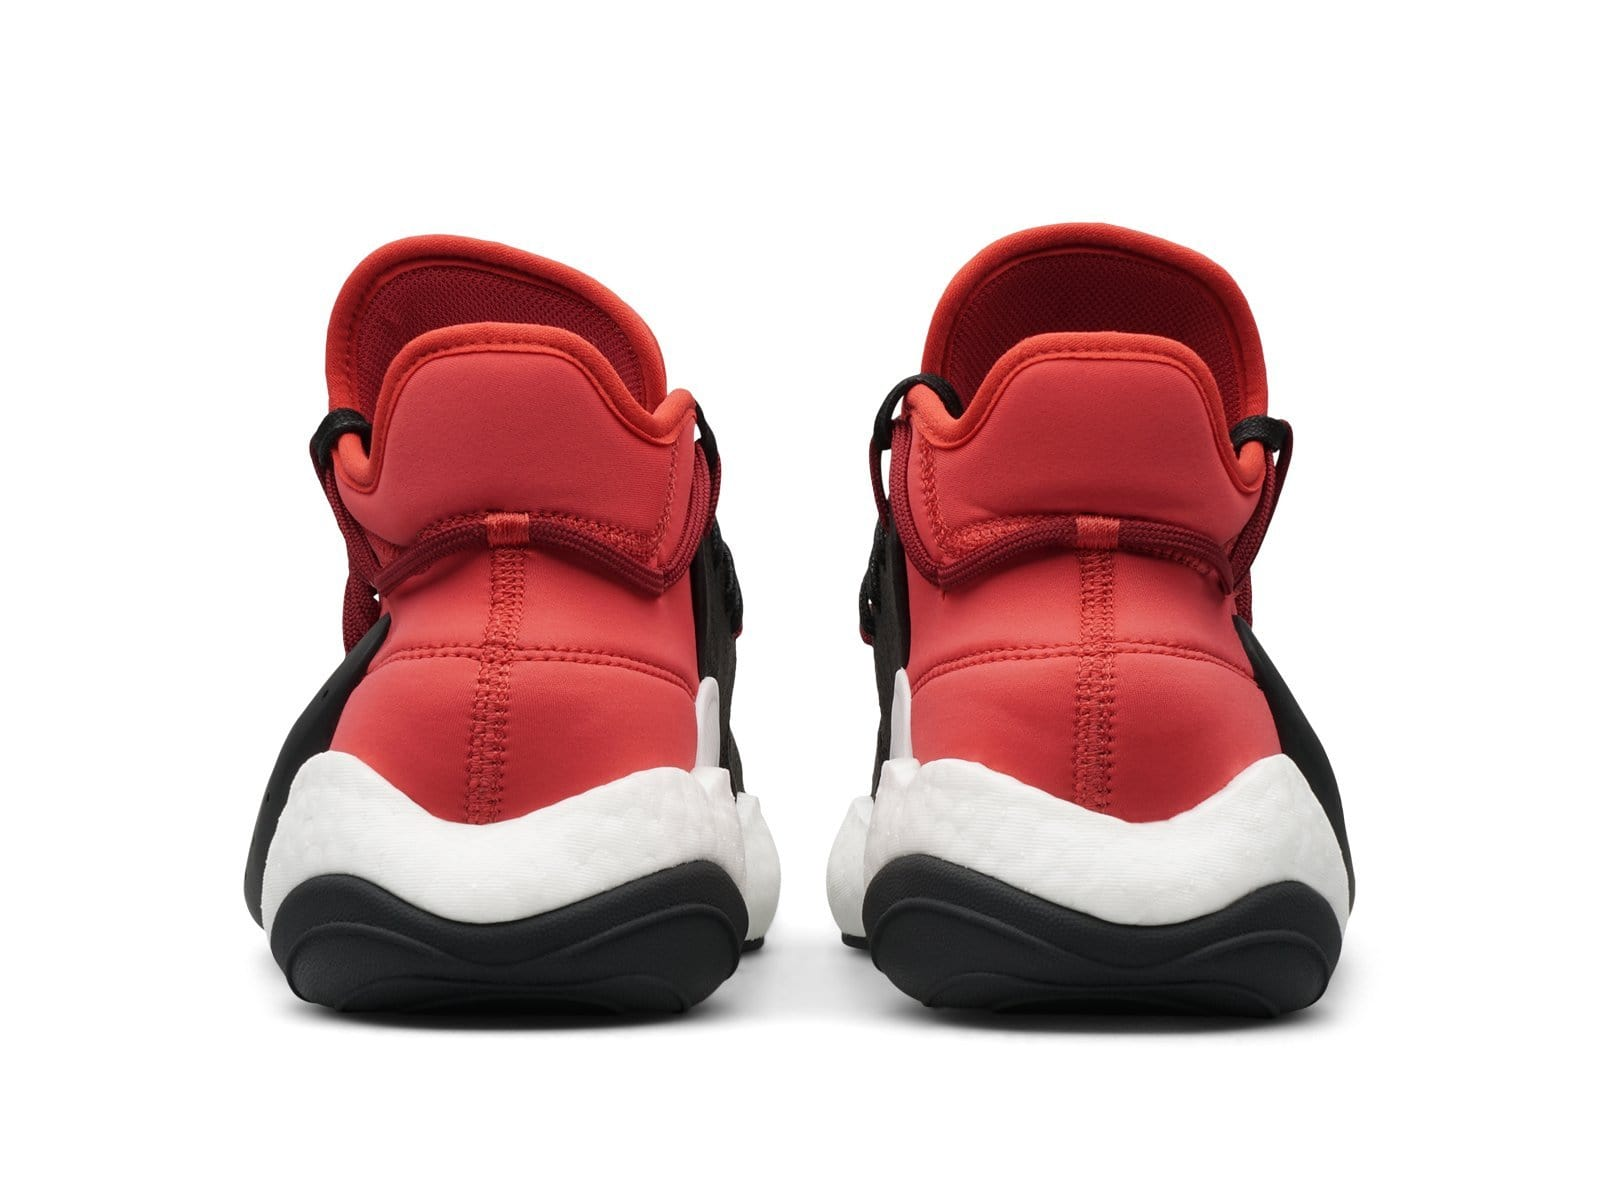 c544125d8acd Y-3 BYW BBALL Core Black Lush Red Core White – Bodega